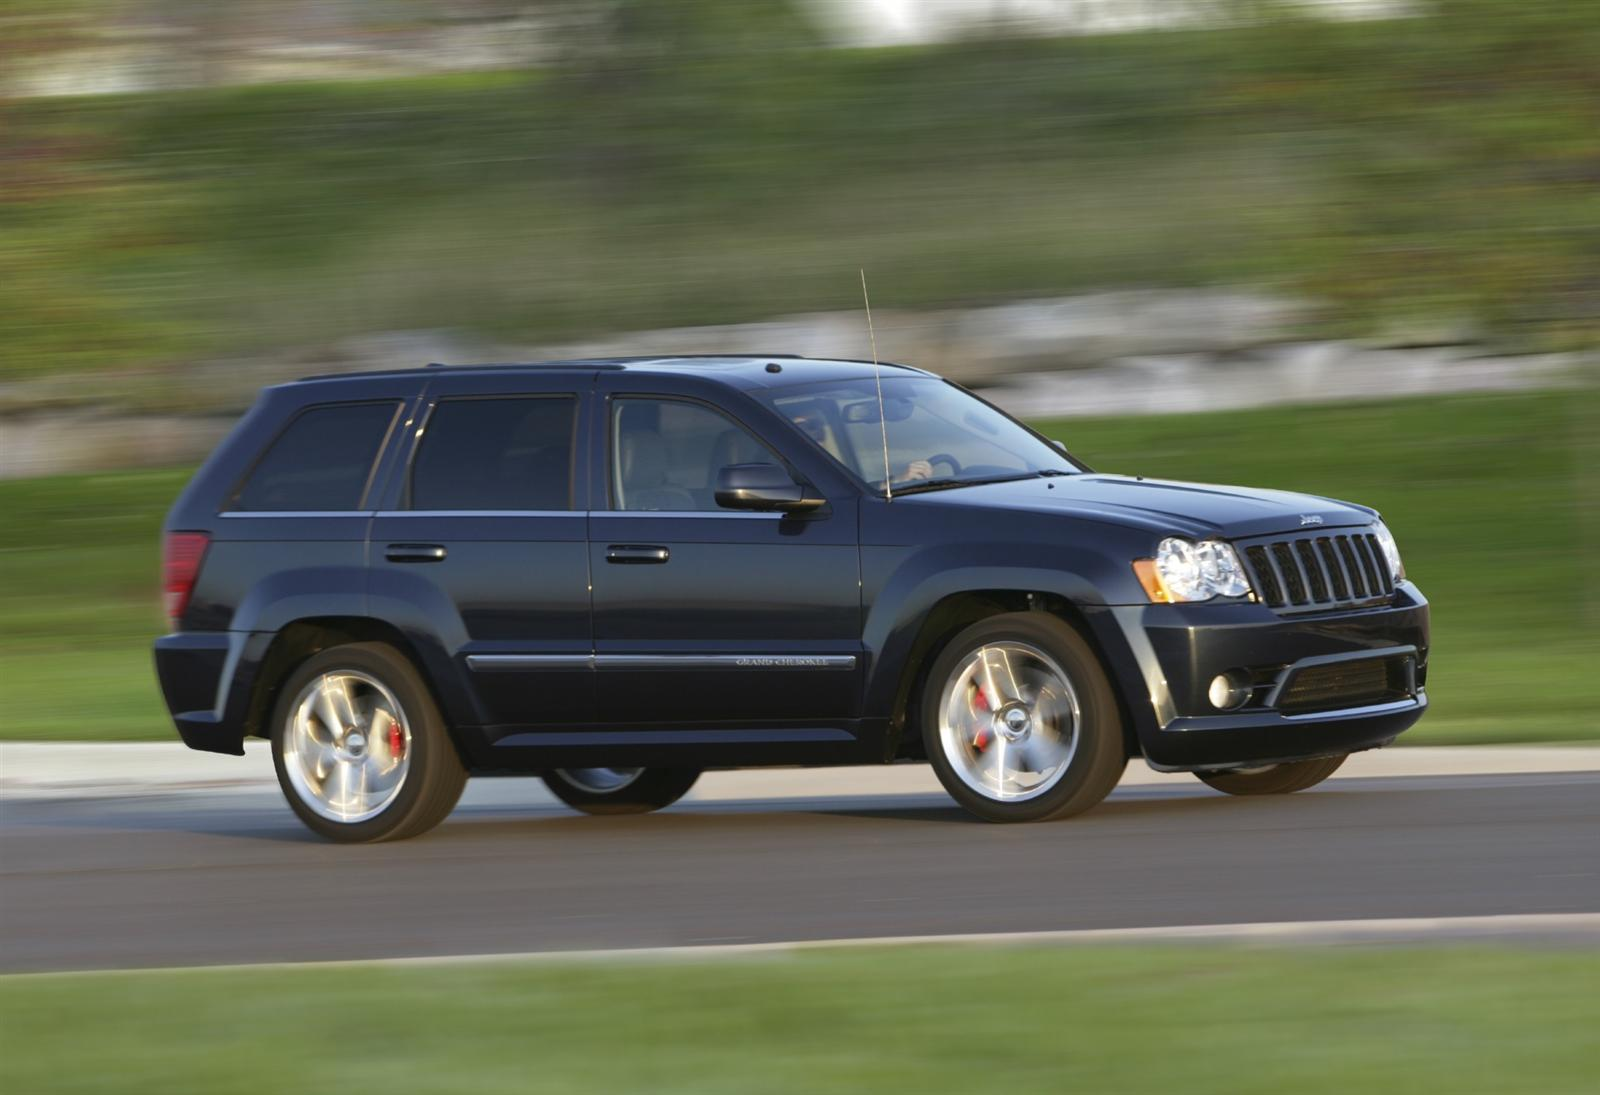 2010 Jeep Grand Cherokee Srt8 Image Https Www